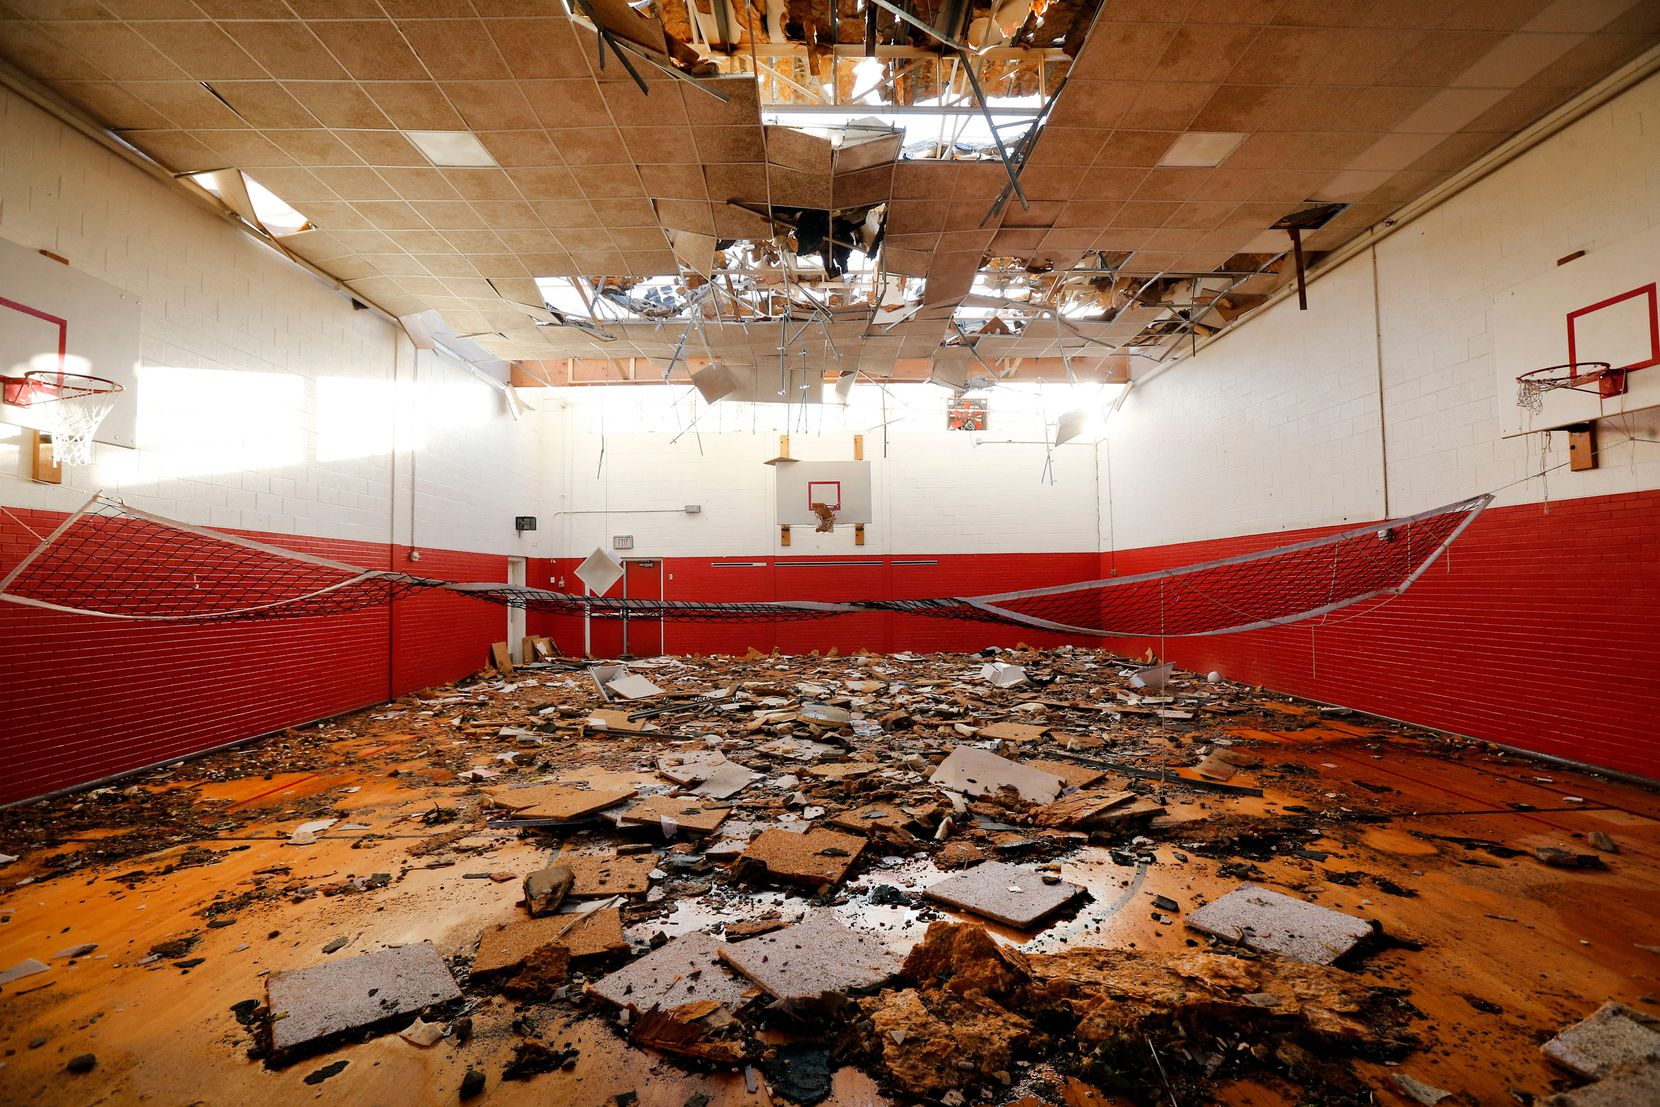 The gymnasium at Cary Jr. High School in Dallas, was damaged by a tornado, Monday, October 21, 2019.